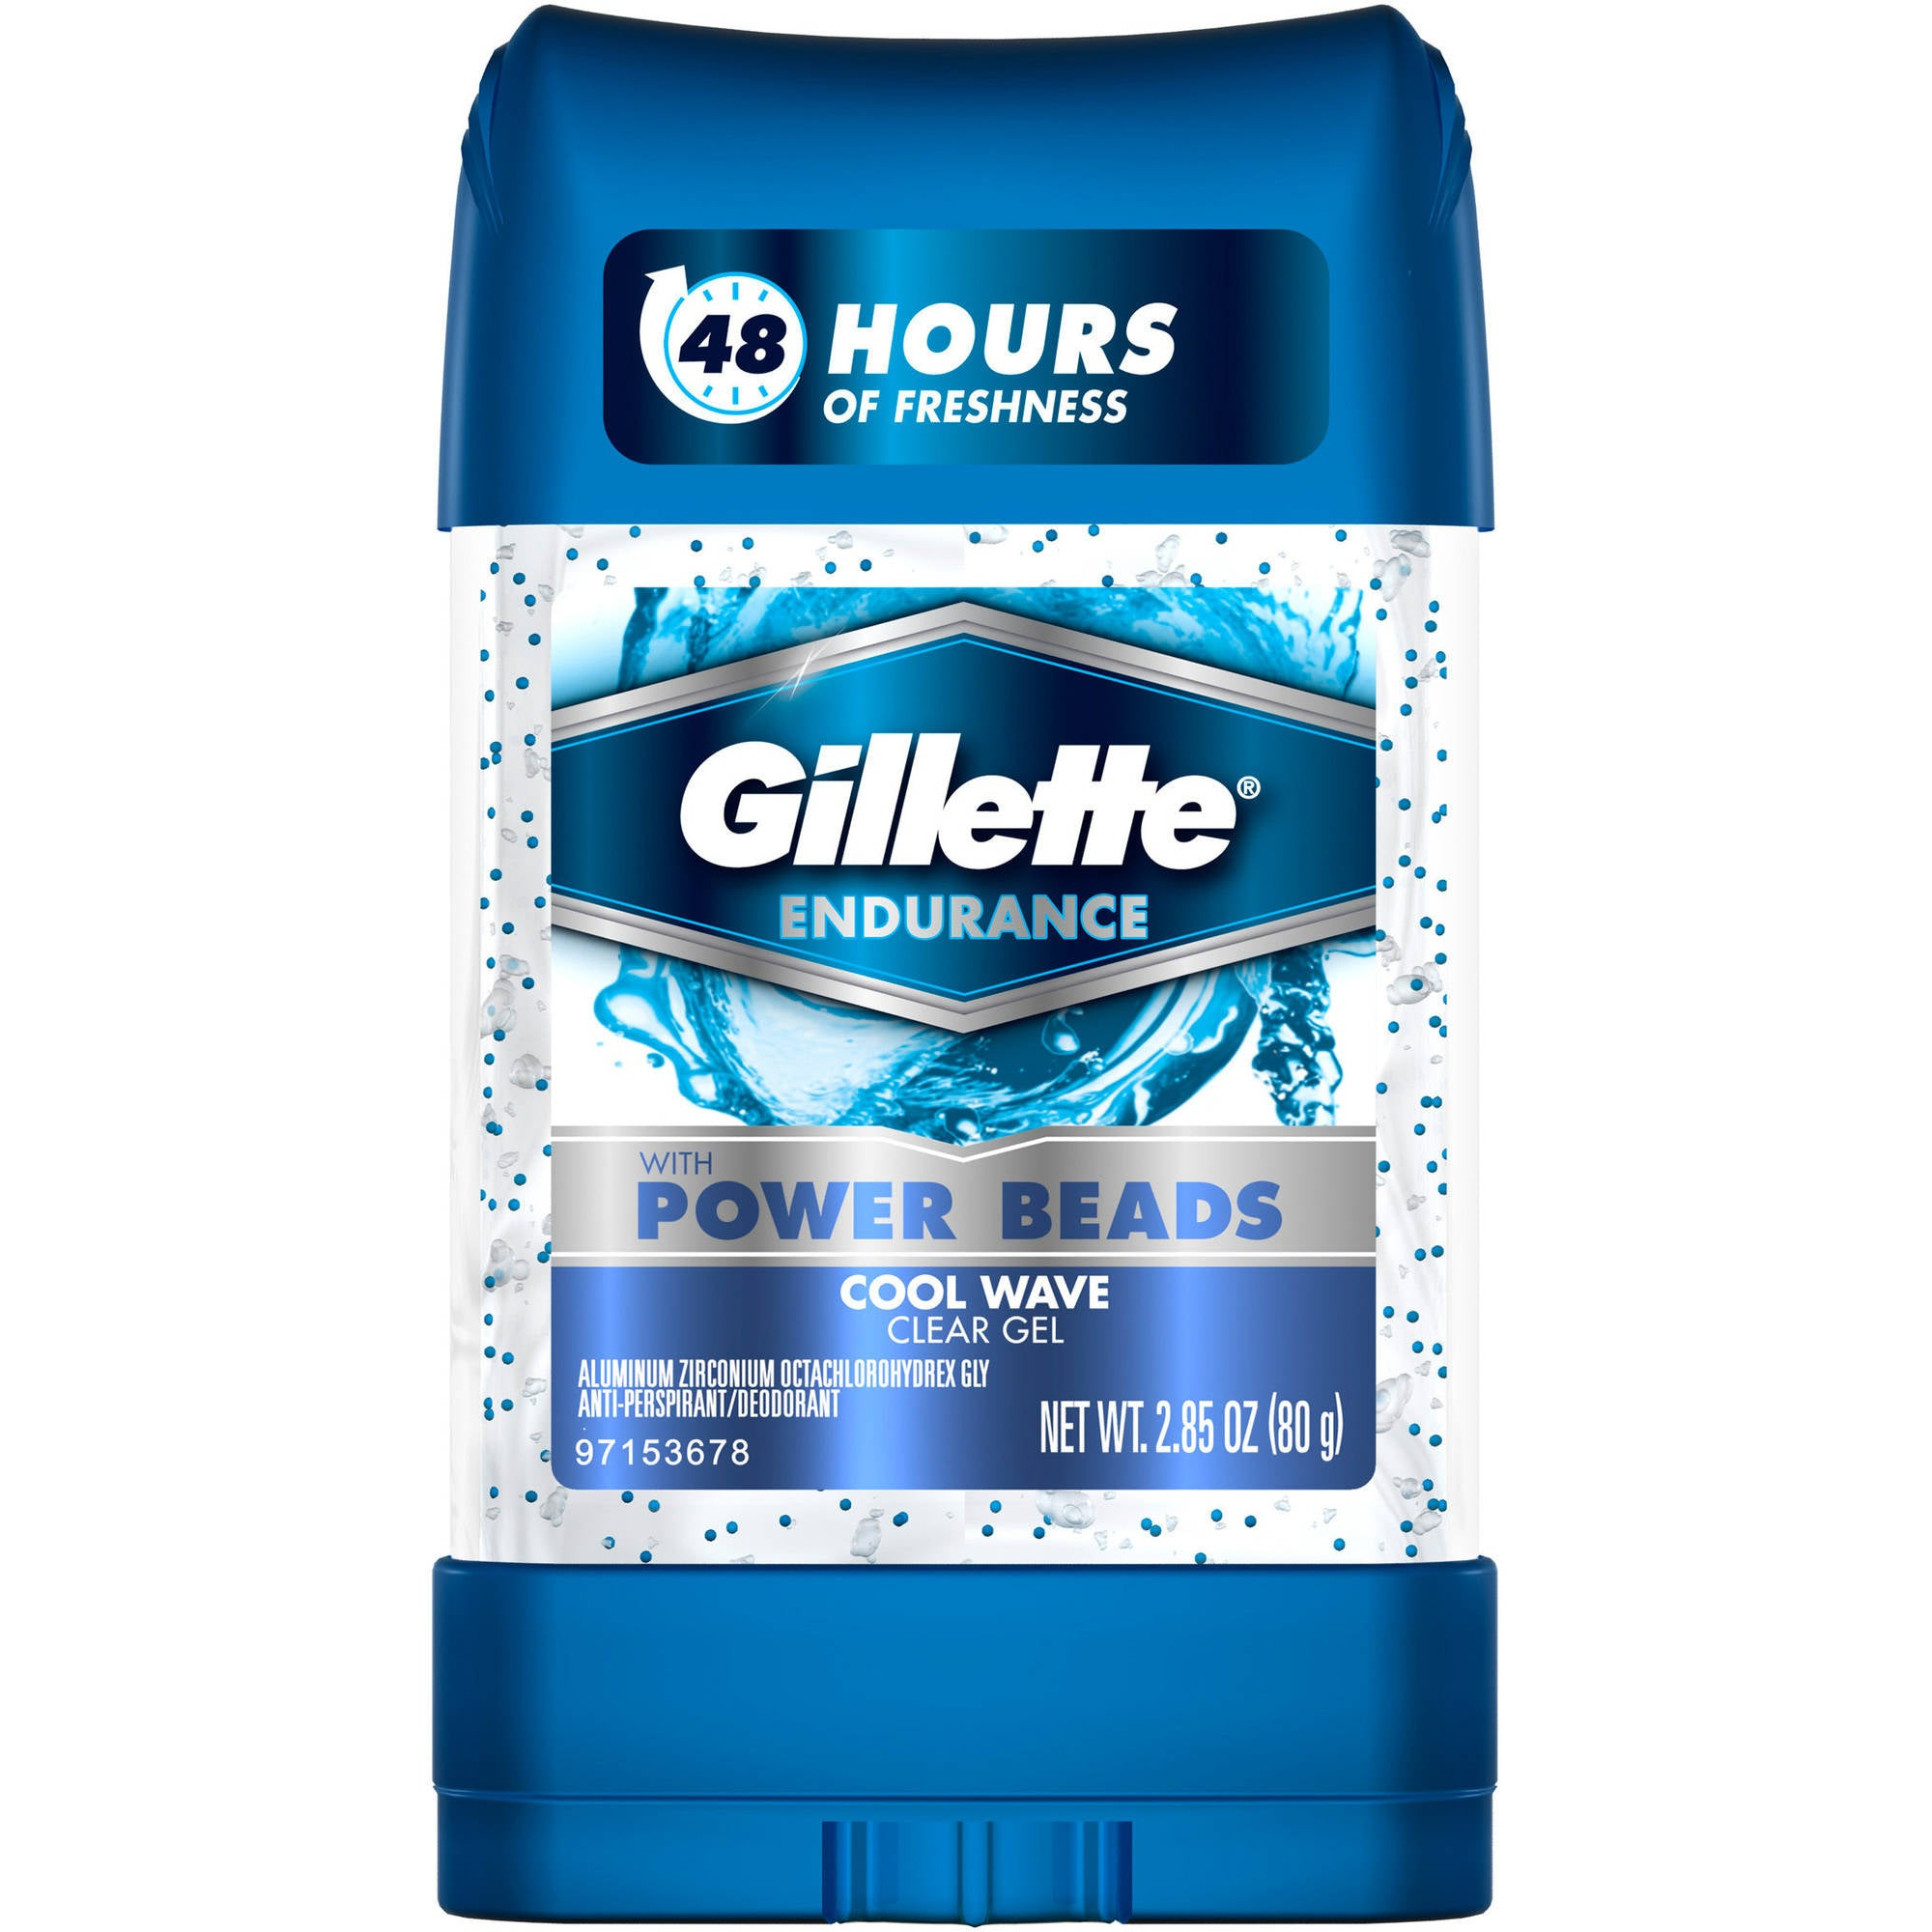 Gillette Clear Gel Power Beads Cool Wave Antiperspirant and Deodorant, 2.85 oz